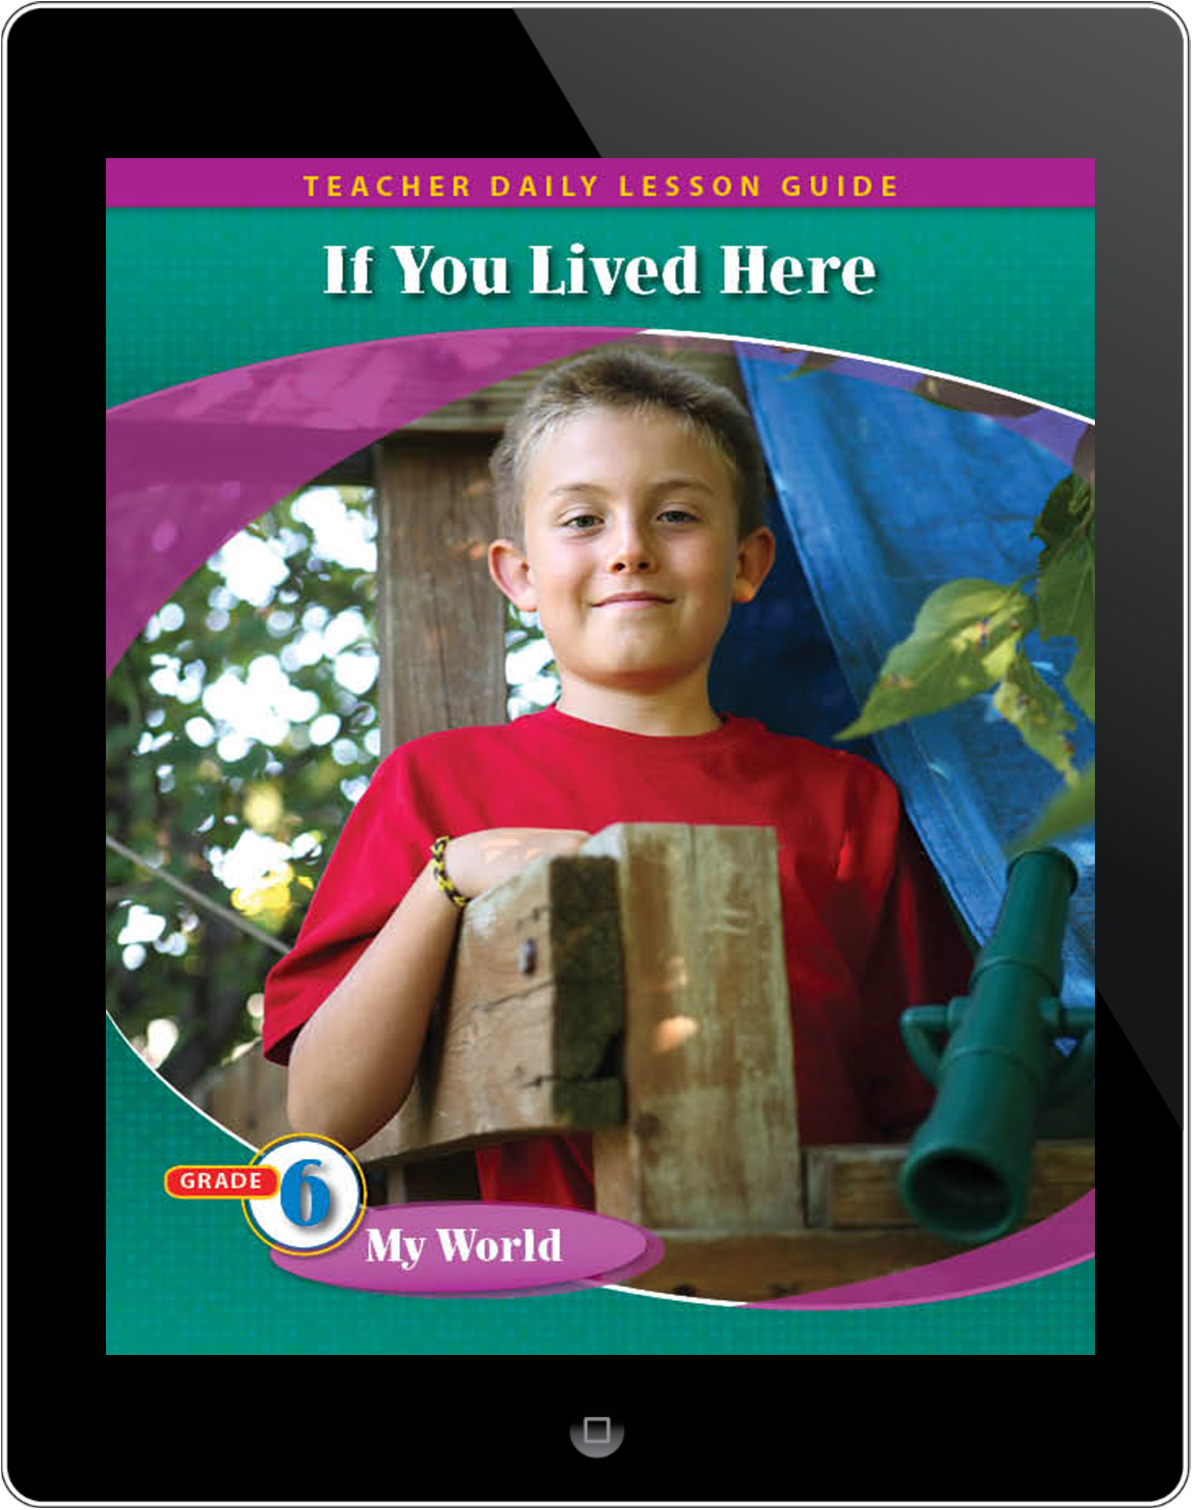 Pathways2.0 Grade 6 My World Unit: If You Lived Here: Houses of the World Daily Lesson Guide 5 Year License